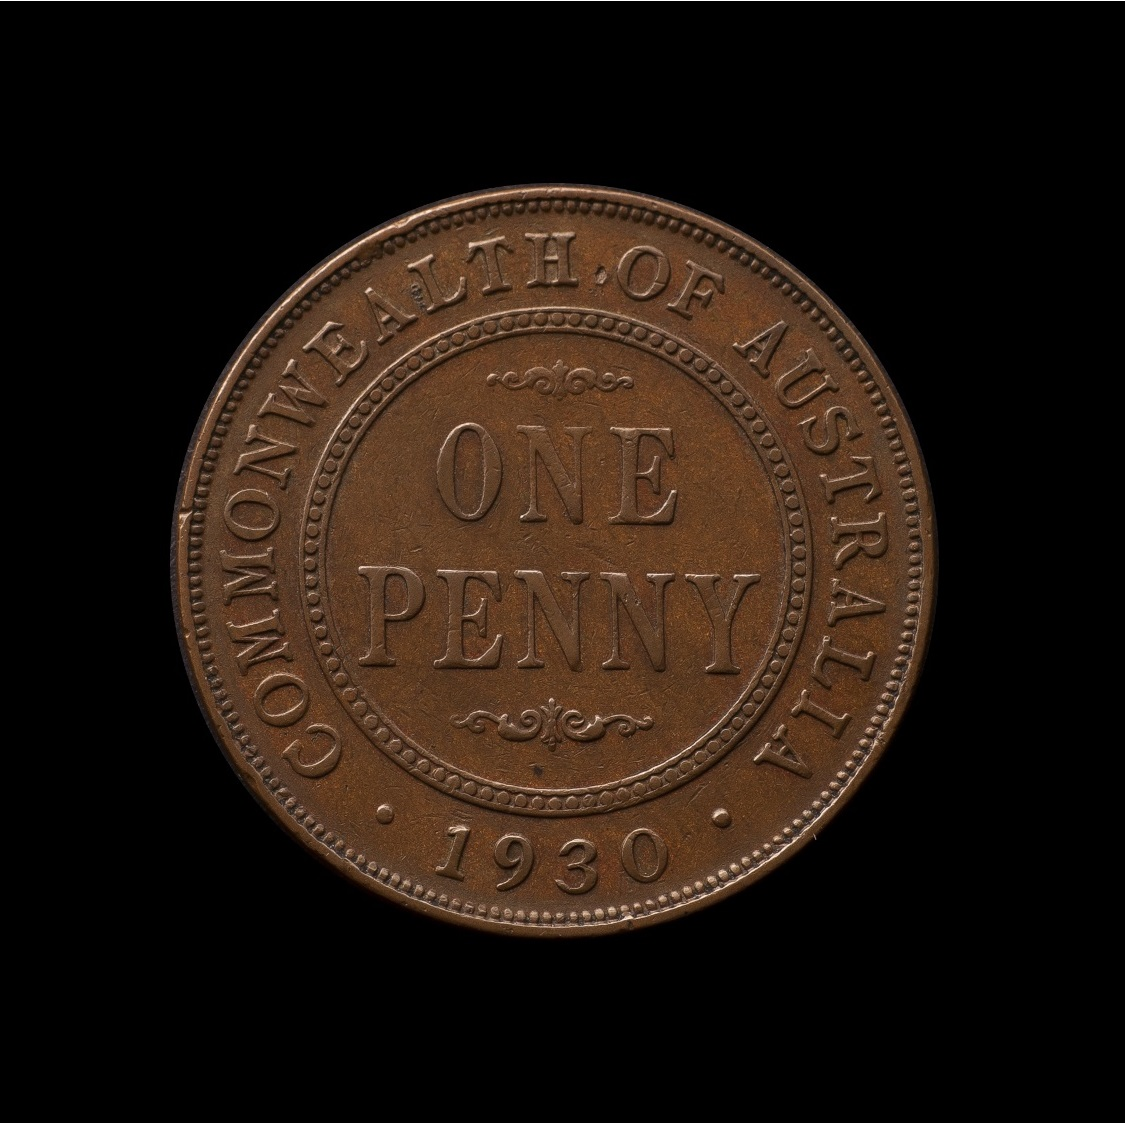 1930 Penny Very Fine reverse tech February 2019